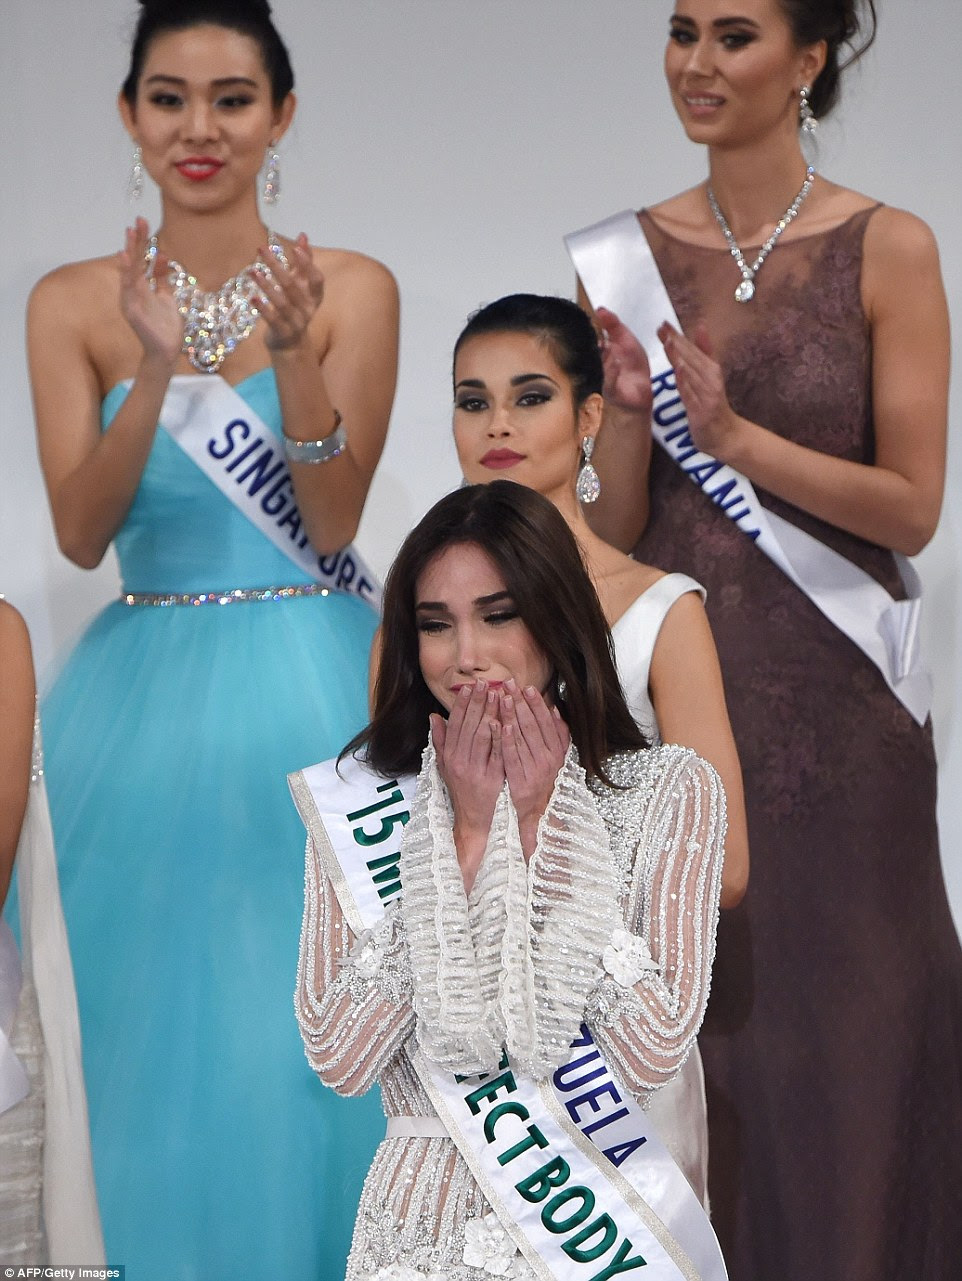 Miss Venezuela bursts into tears as she is announced as Miss International 2015. Miss Singapore, Miss Romania and another contestant do their best to smile and applaud for the camera behind her